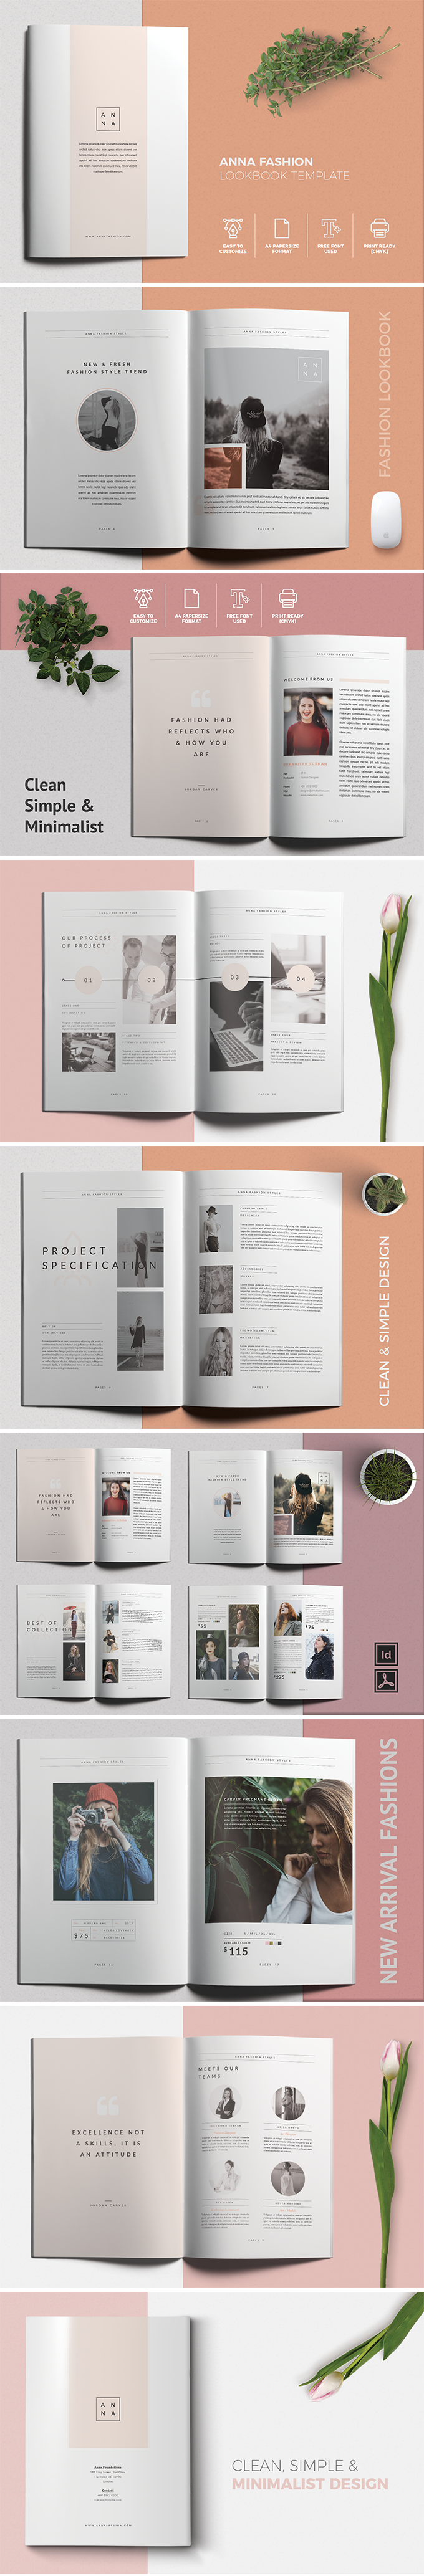 Multipurpose Brochure Template Vol. 08